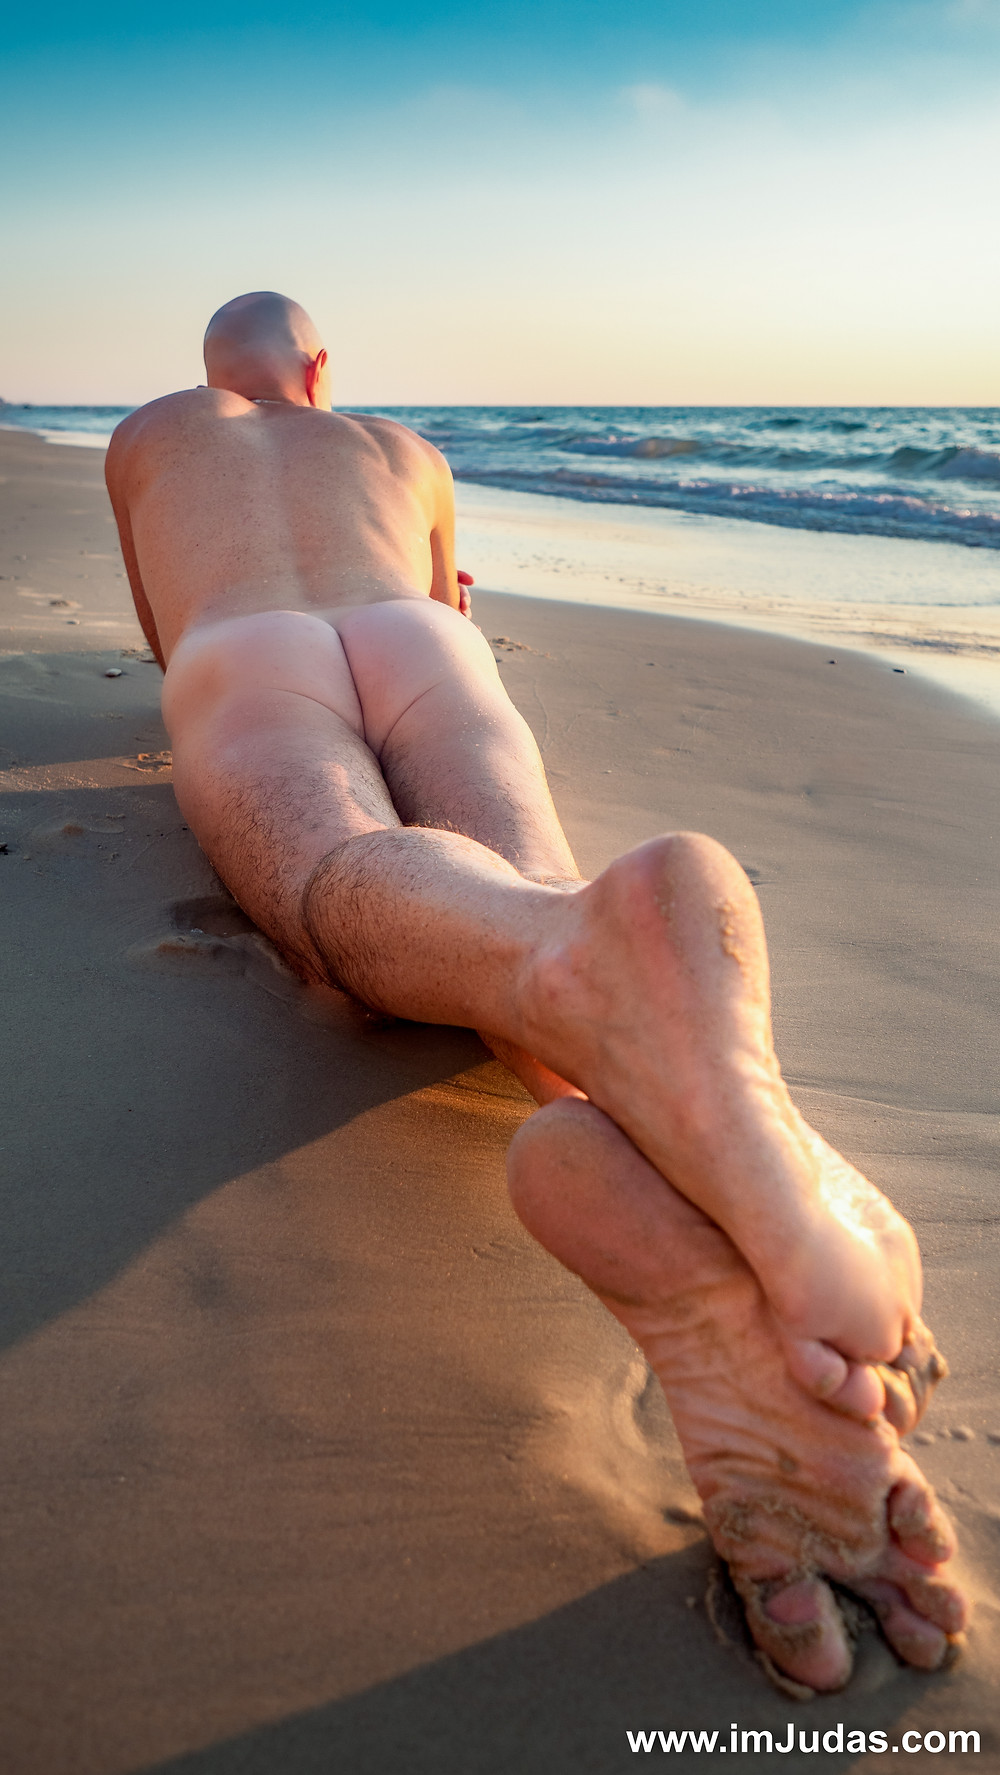 naked ass beach model male nude